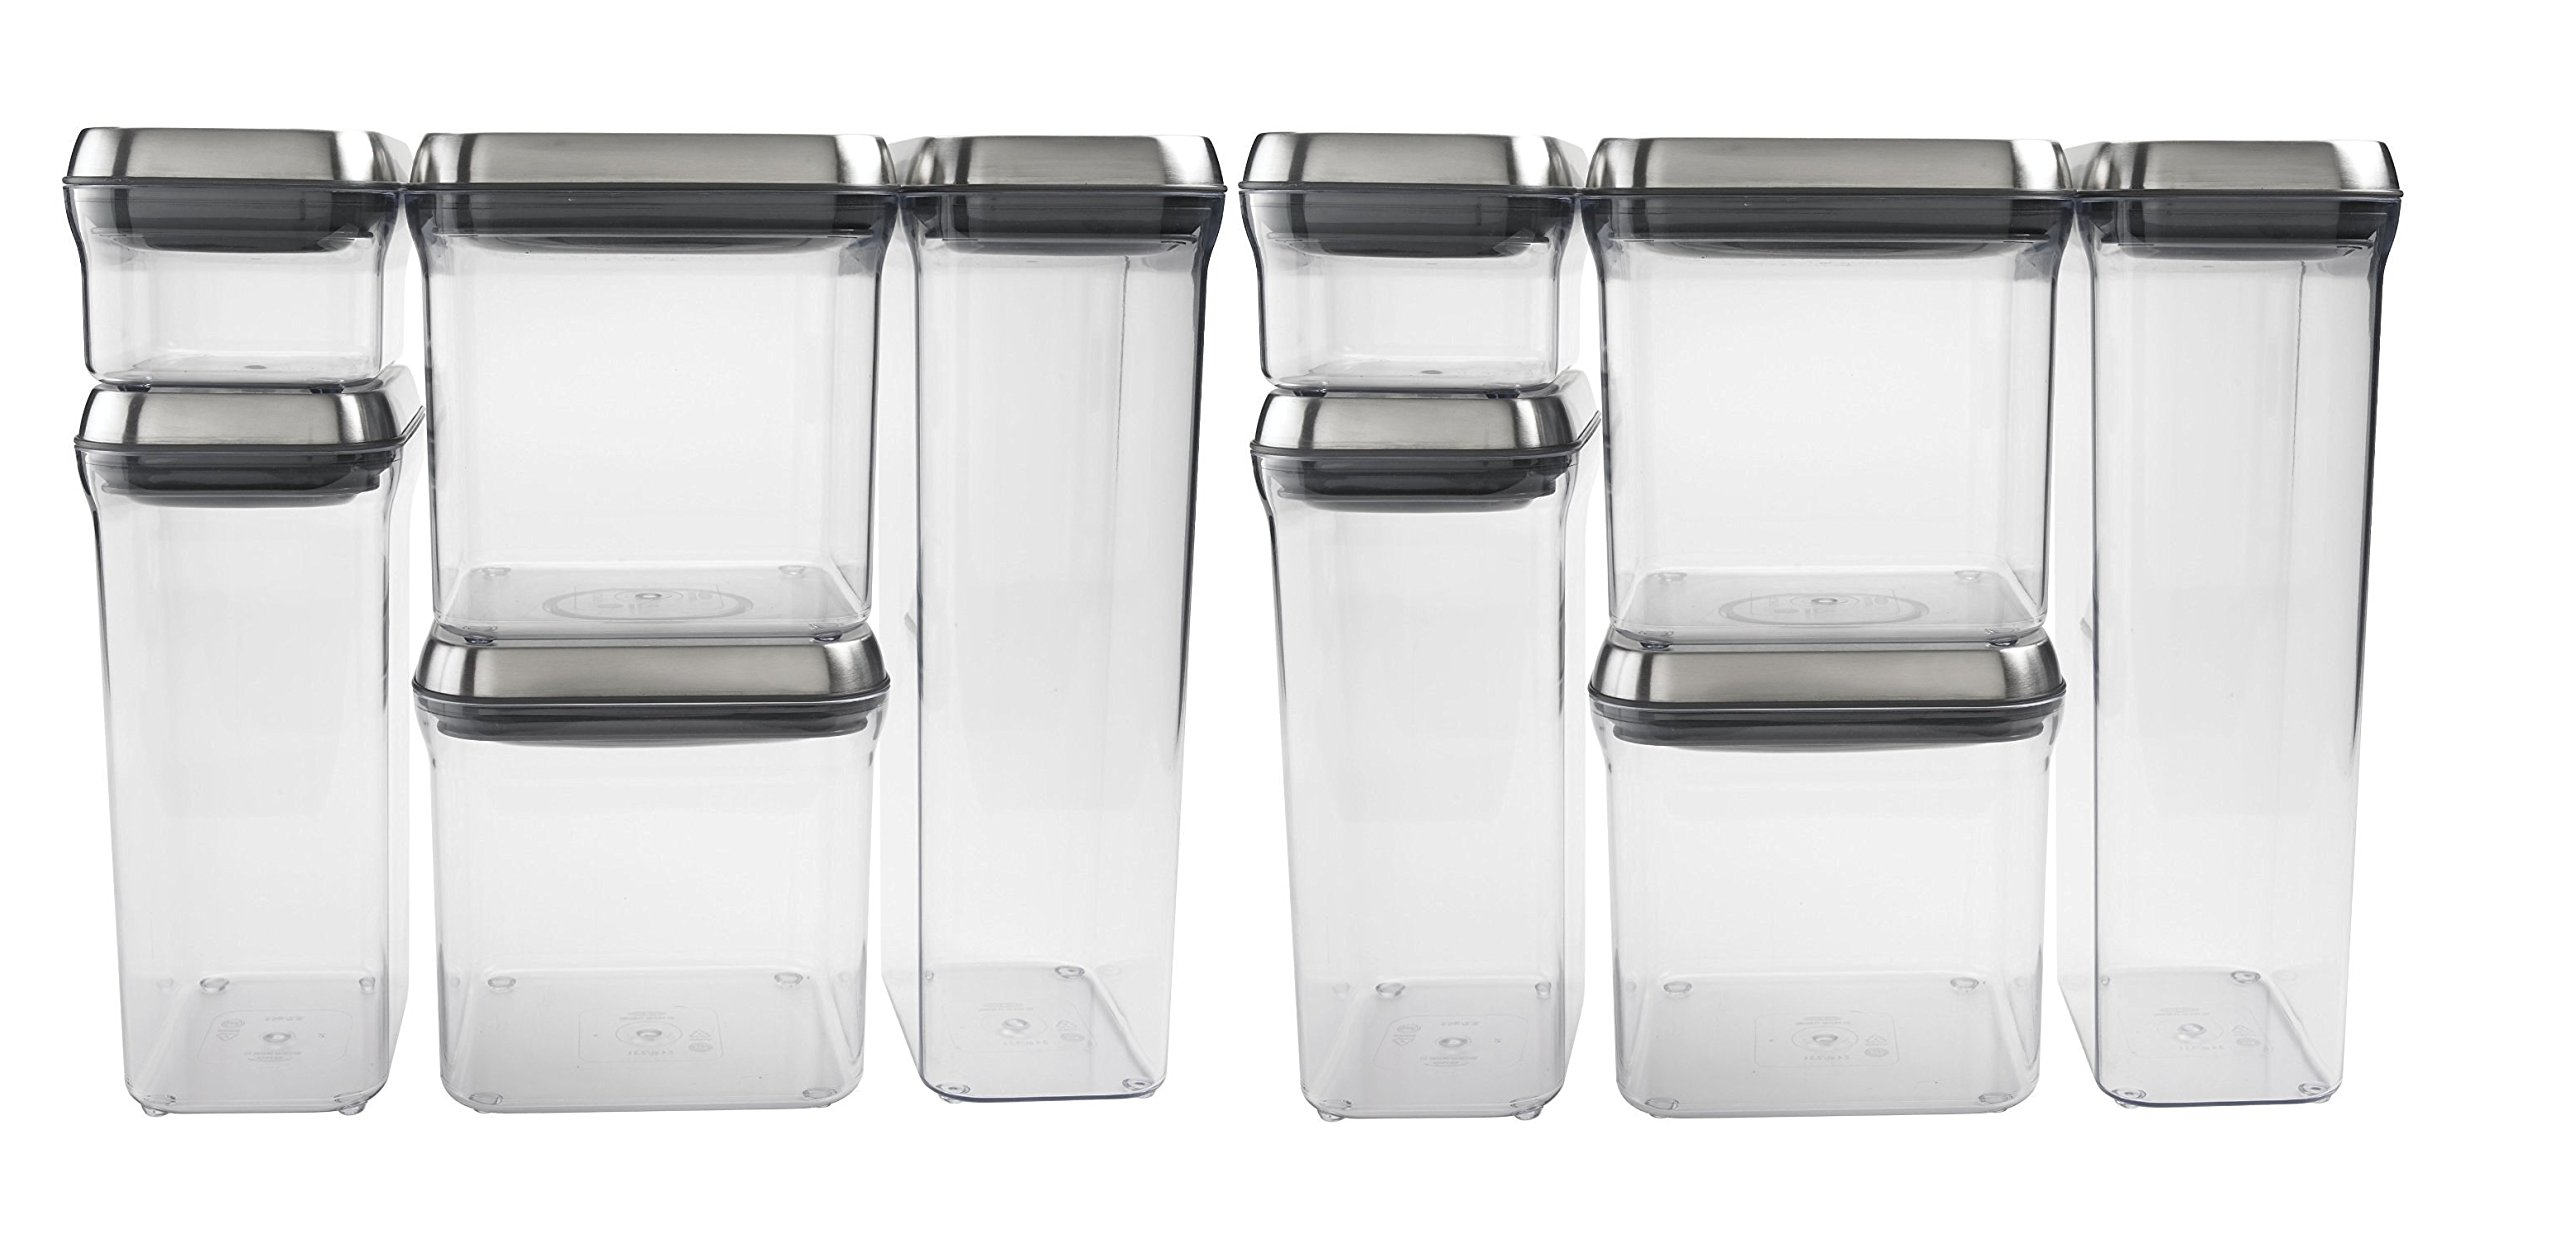 OXO SteeL 10-Piece Pop Container Set by OXO